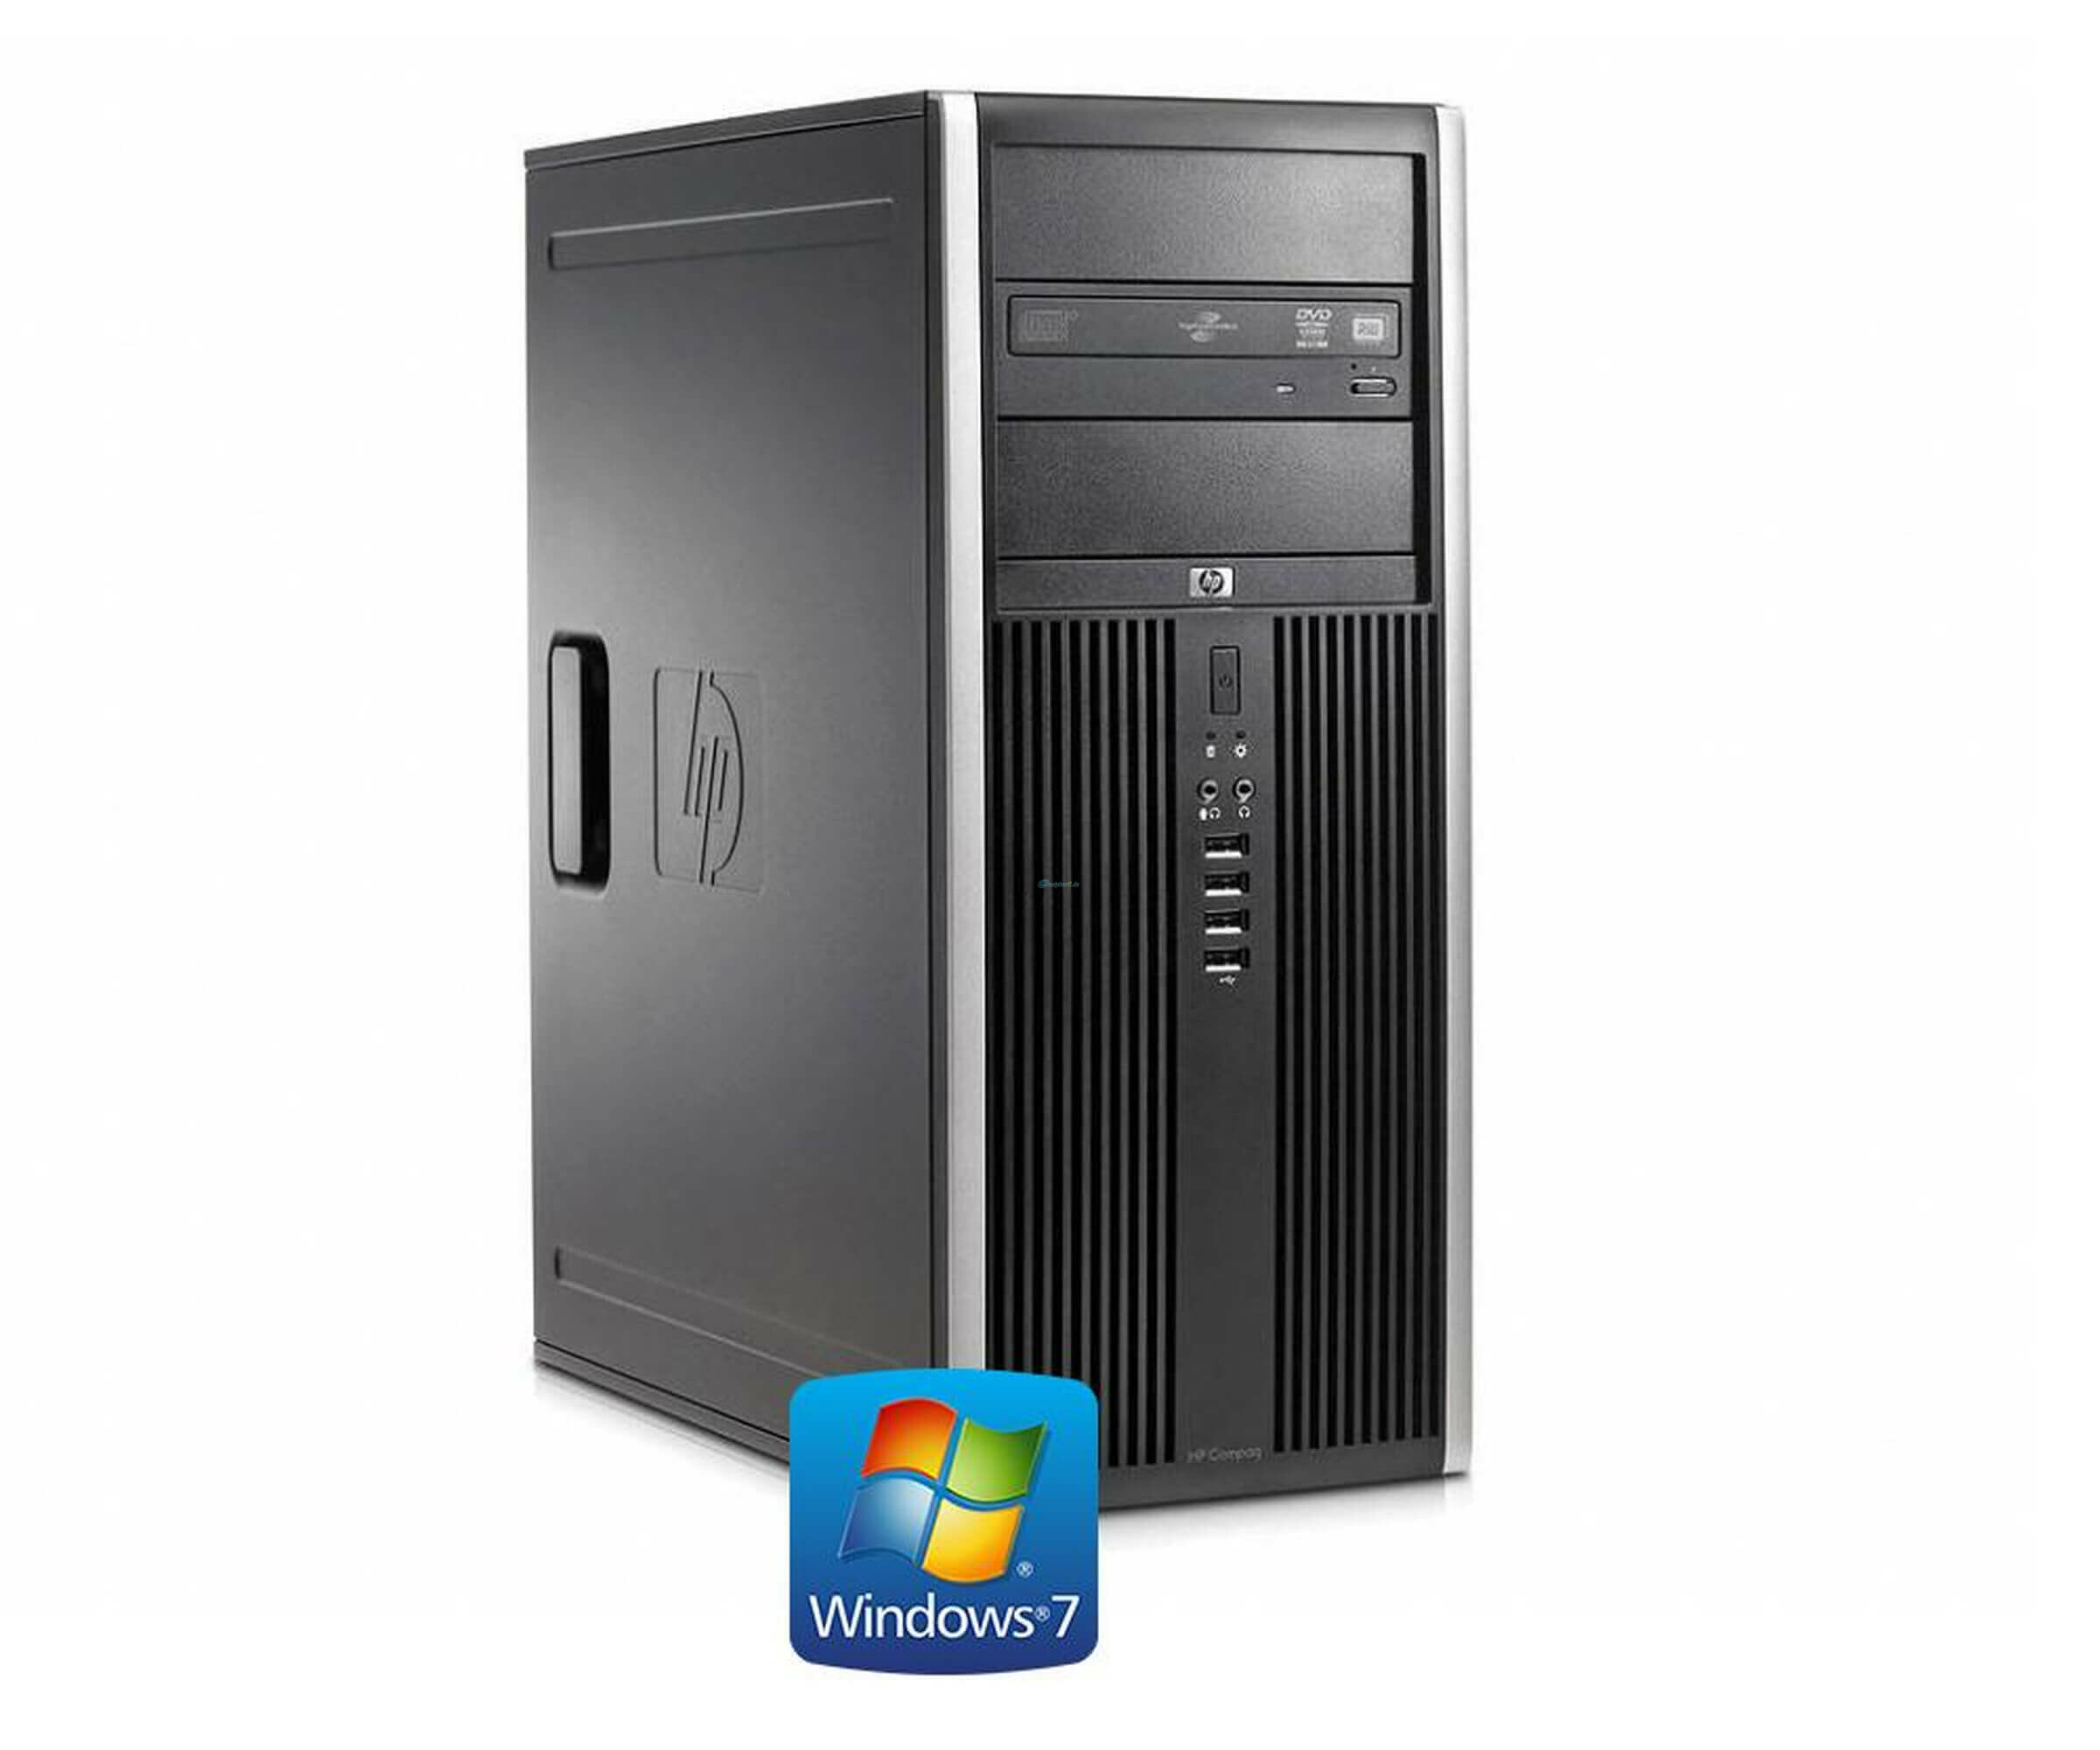 PC Systeme, Computer - HP Compaq Elite 8100 CMT Intel Core i3 530 2,93 GHz RAM 2 GB 160 GB HDD DVD RW Windows 7  - Onlineshop Noteboox.de